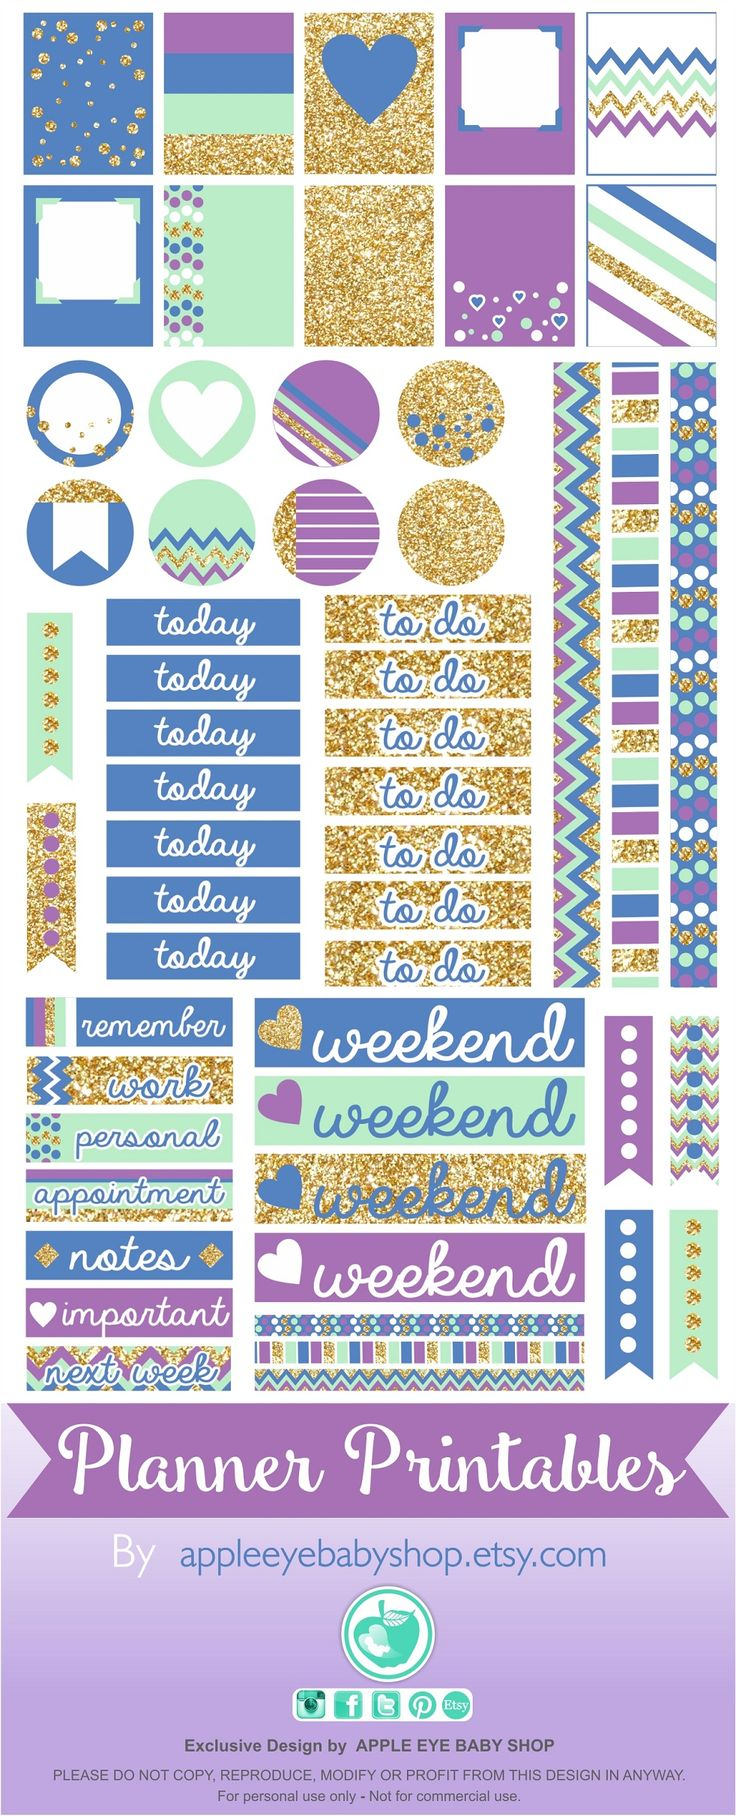 FREE Planner PRINTABLES | Filofax, Erin Condren, Life Planner, Agendas, Notecards, Organizing/Gift Labels, Notebooks, Stickers, Stationary, Journals, Plum Paper. DIY Crafts, Cricut or Silhouette Projects & more...  Gold Glitter, Purple, Mint, Blue. DOWNLOAD - PRINT & CUT. By Apple Eye Baby Shop